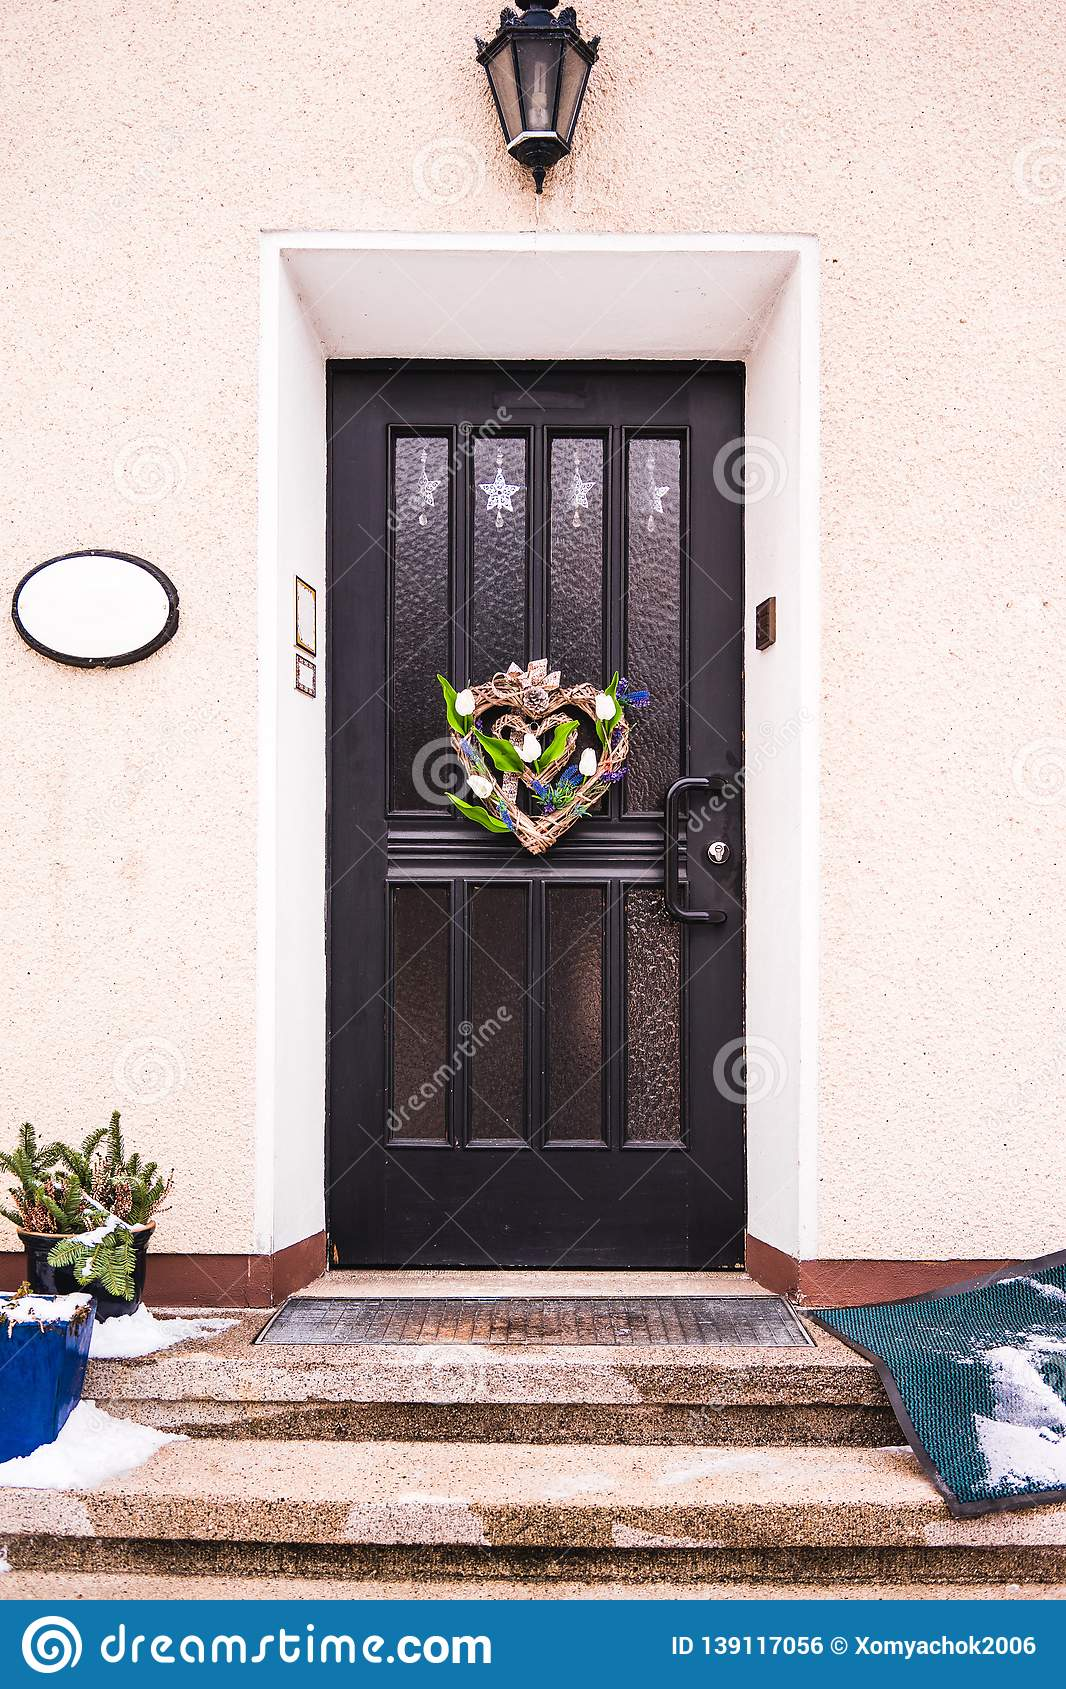 Home Entrance With Decorative Wreath On Front Door Stock Photo Image Of Decorative Floral 139117056